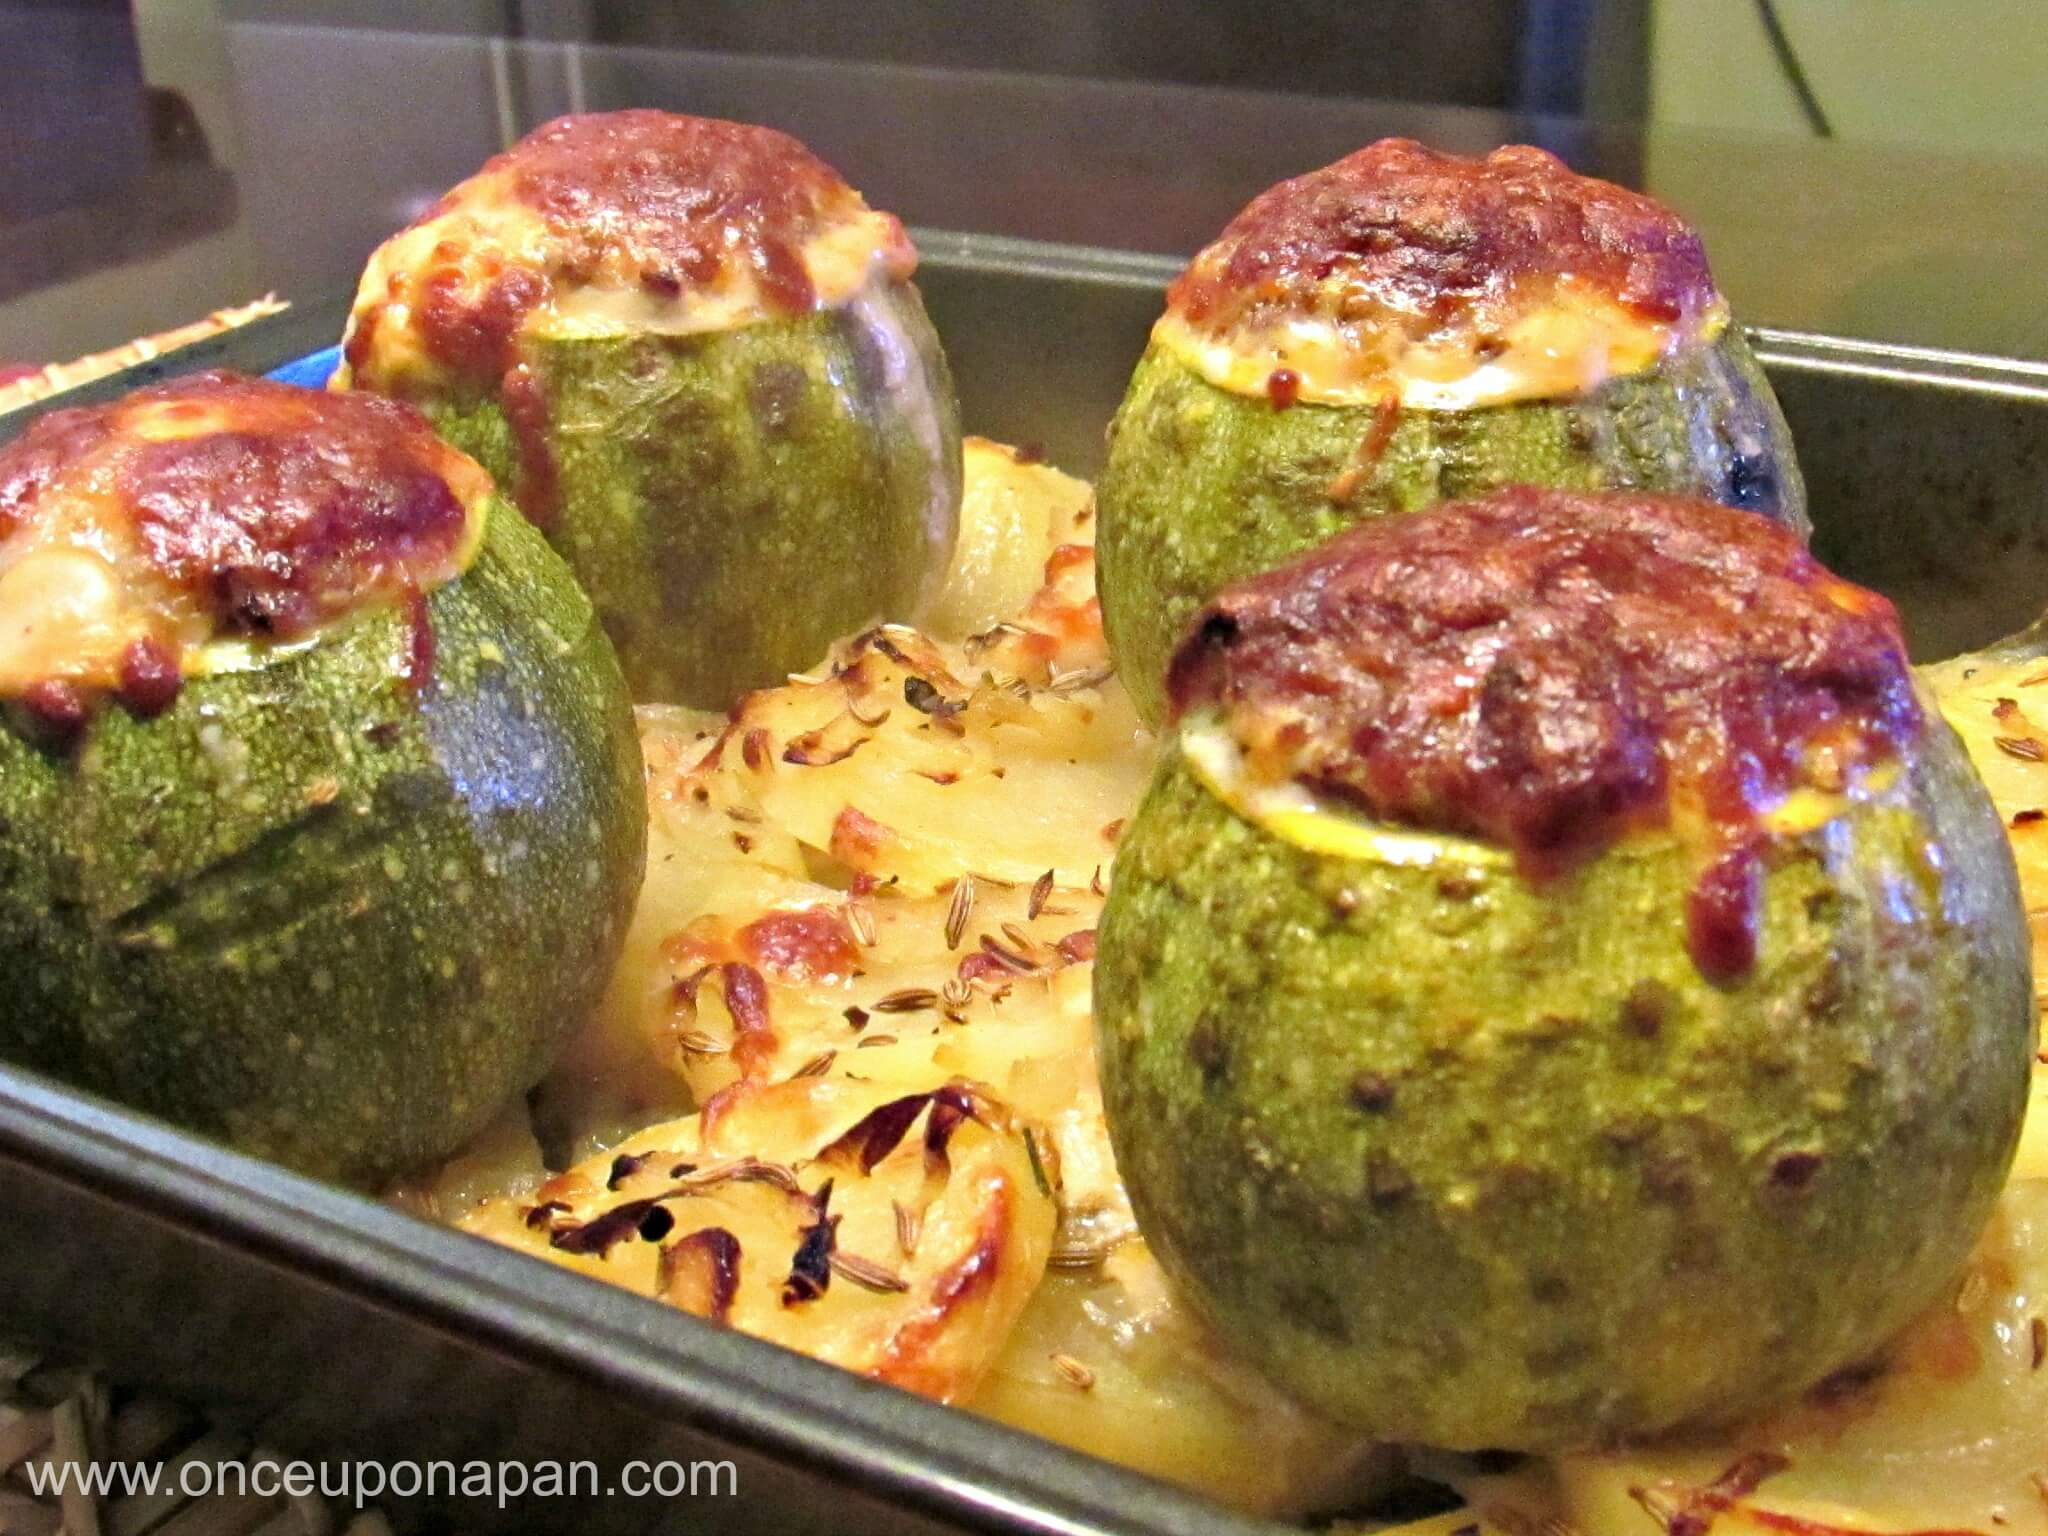 Baked Stuffed Marrows